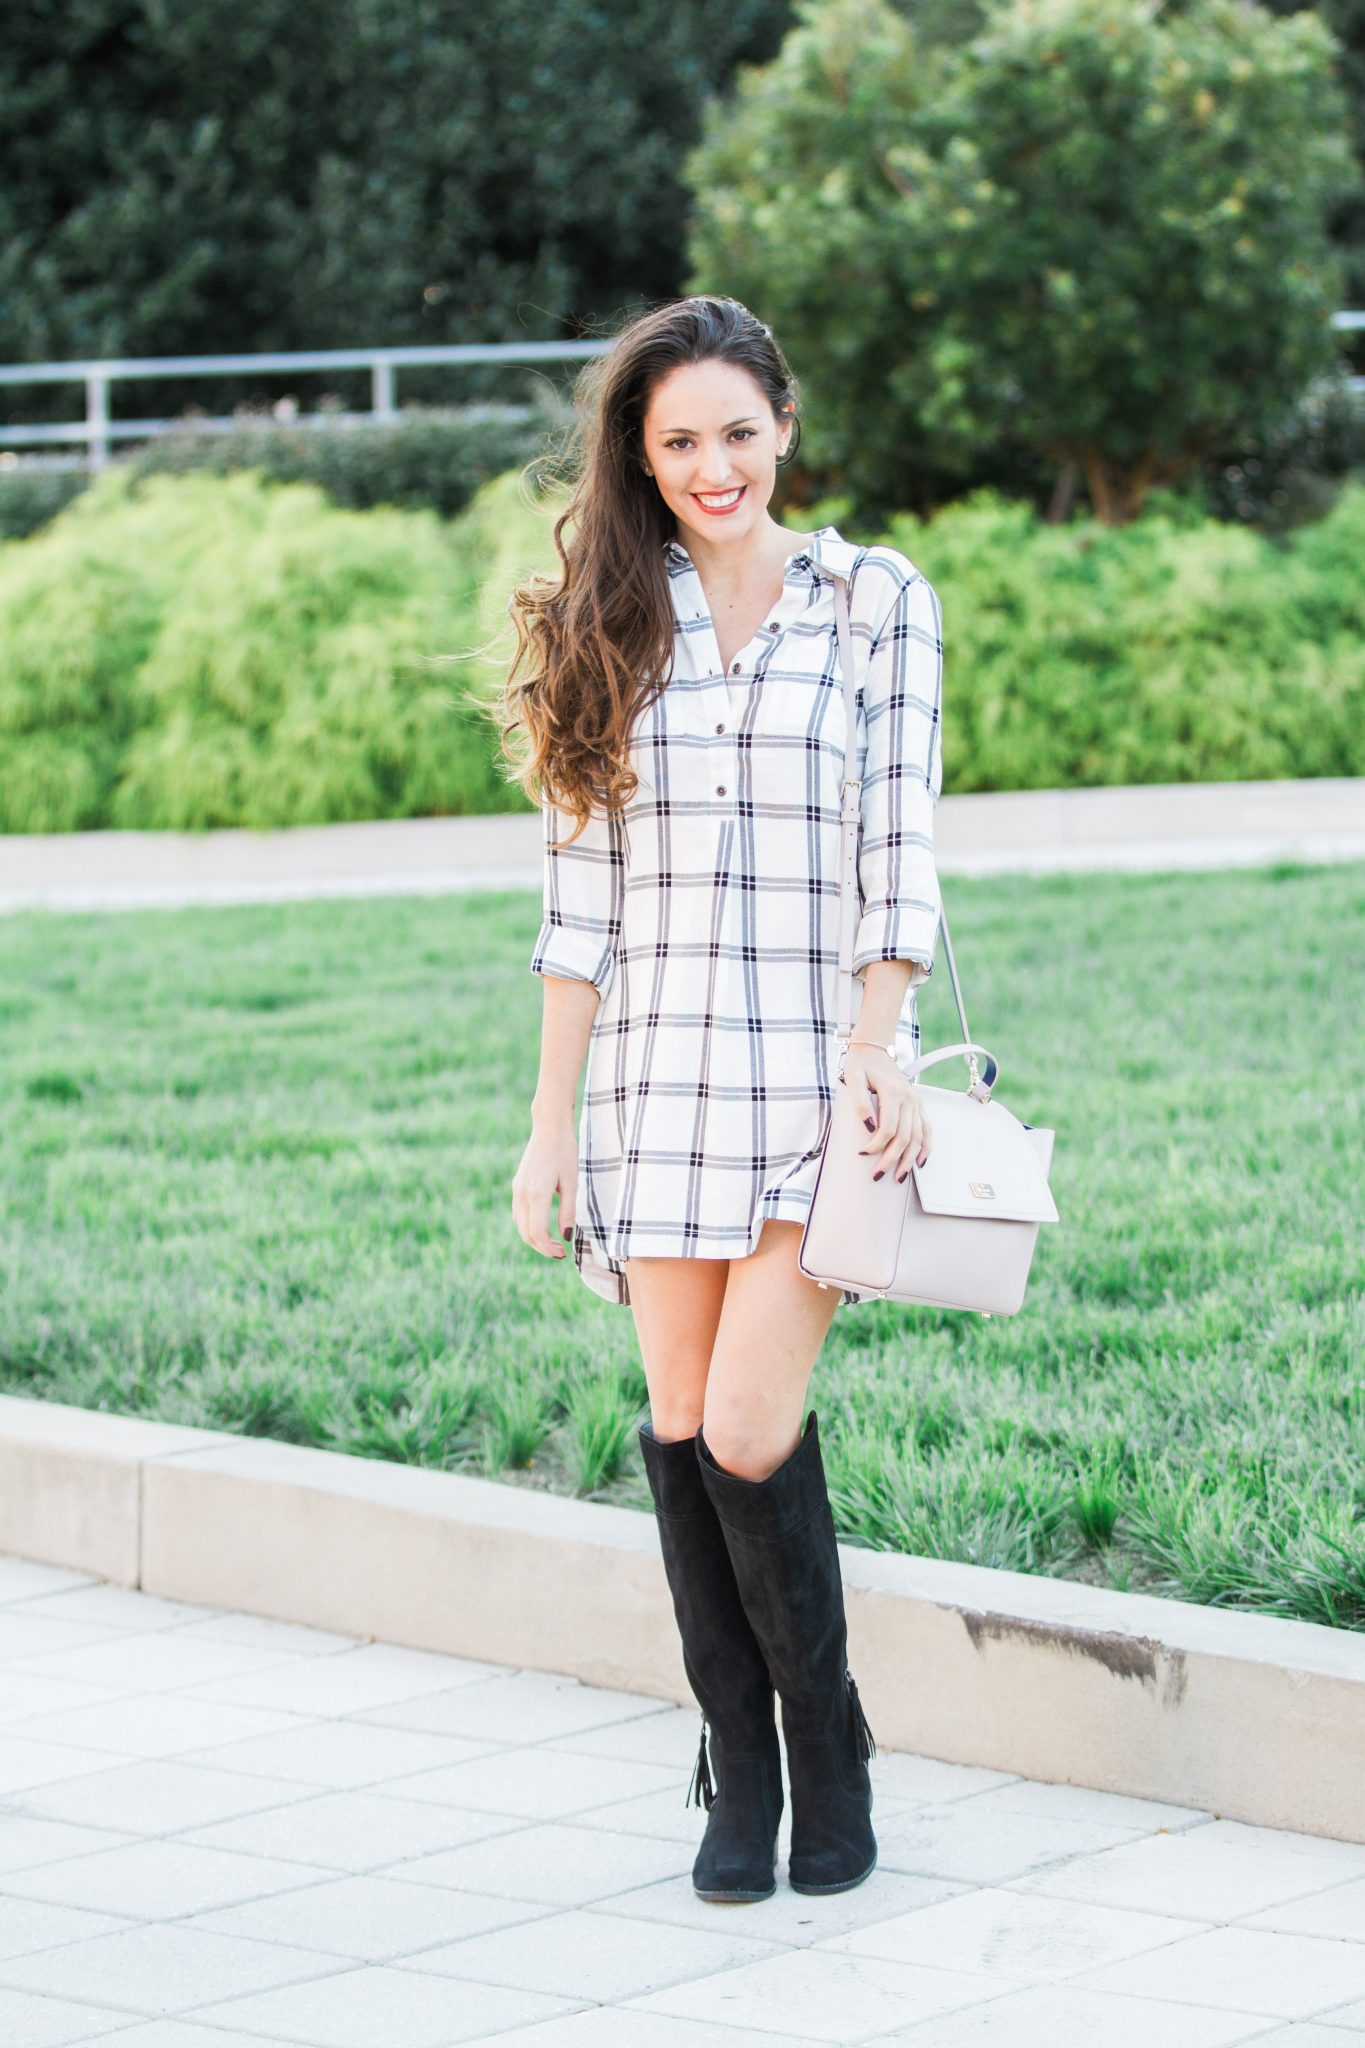 where to shop in atlanta, shopping in atlanta, indigo rd alluring 2 boots in black, plaid dress, belk, how to wear a dress with boots, otk boots, over the knee boots, kate spade ARBOUR HILL LILAH, fall style, classic fall style, casual fall style, shopping outfit ideas, fall outfit ideas